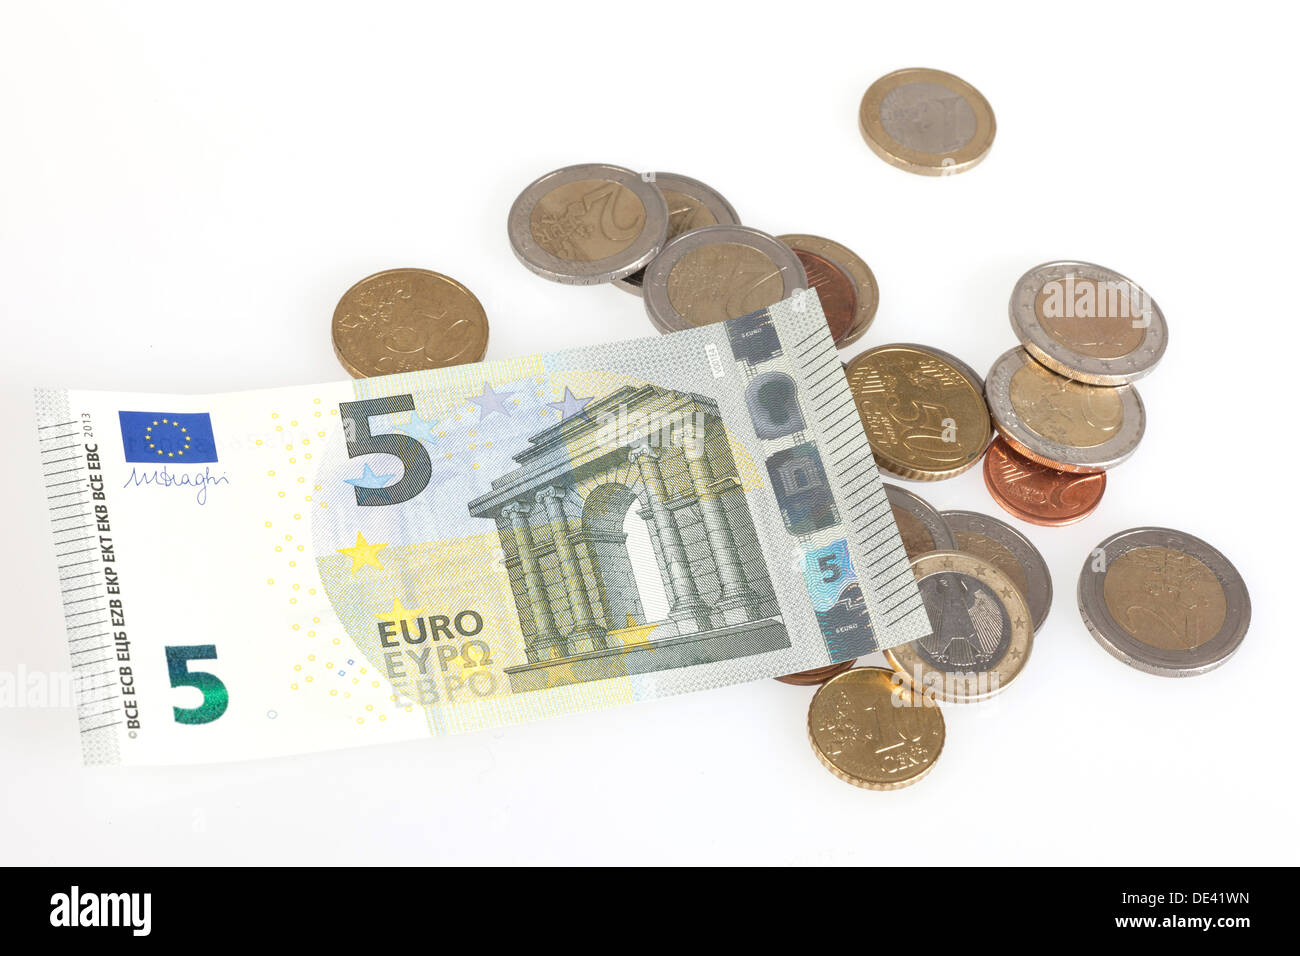 Berlin, Germany, 5 euro bill and Euromuenzen - Stock Image